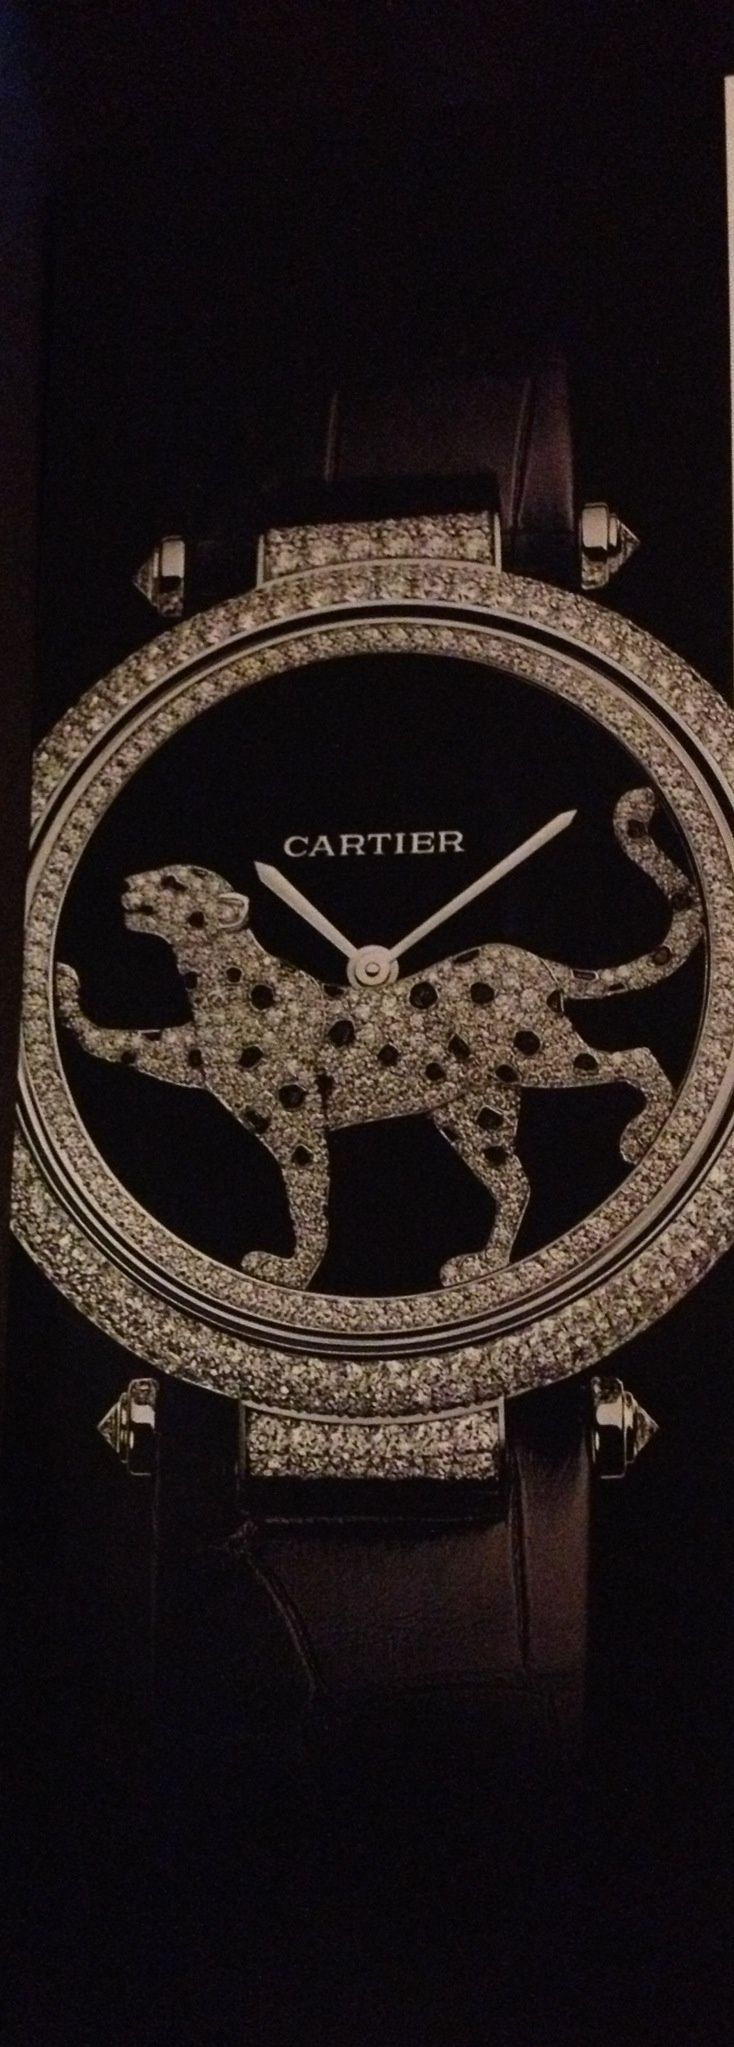 Lion'esque watch uncovered! When it's that amazing, it's price upon request. #Cartier